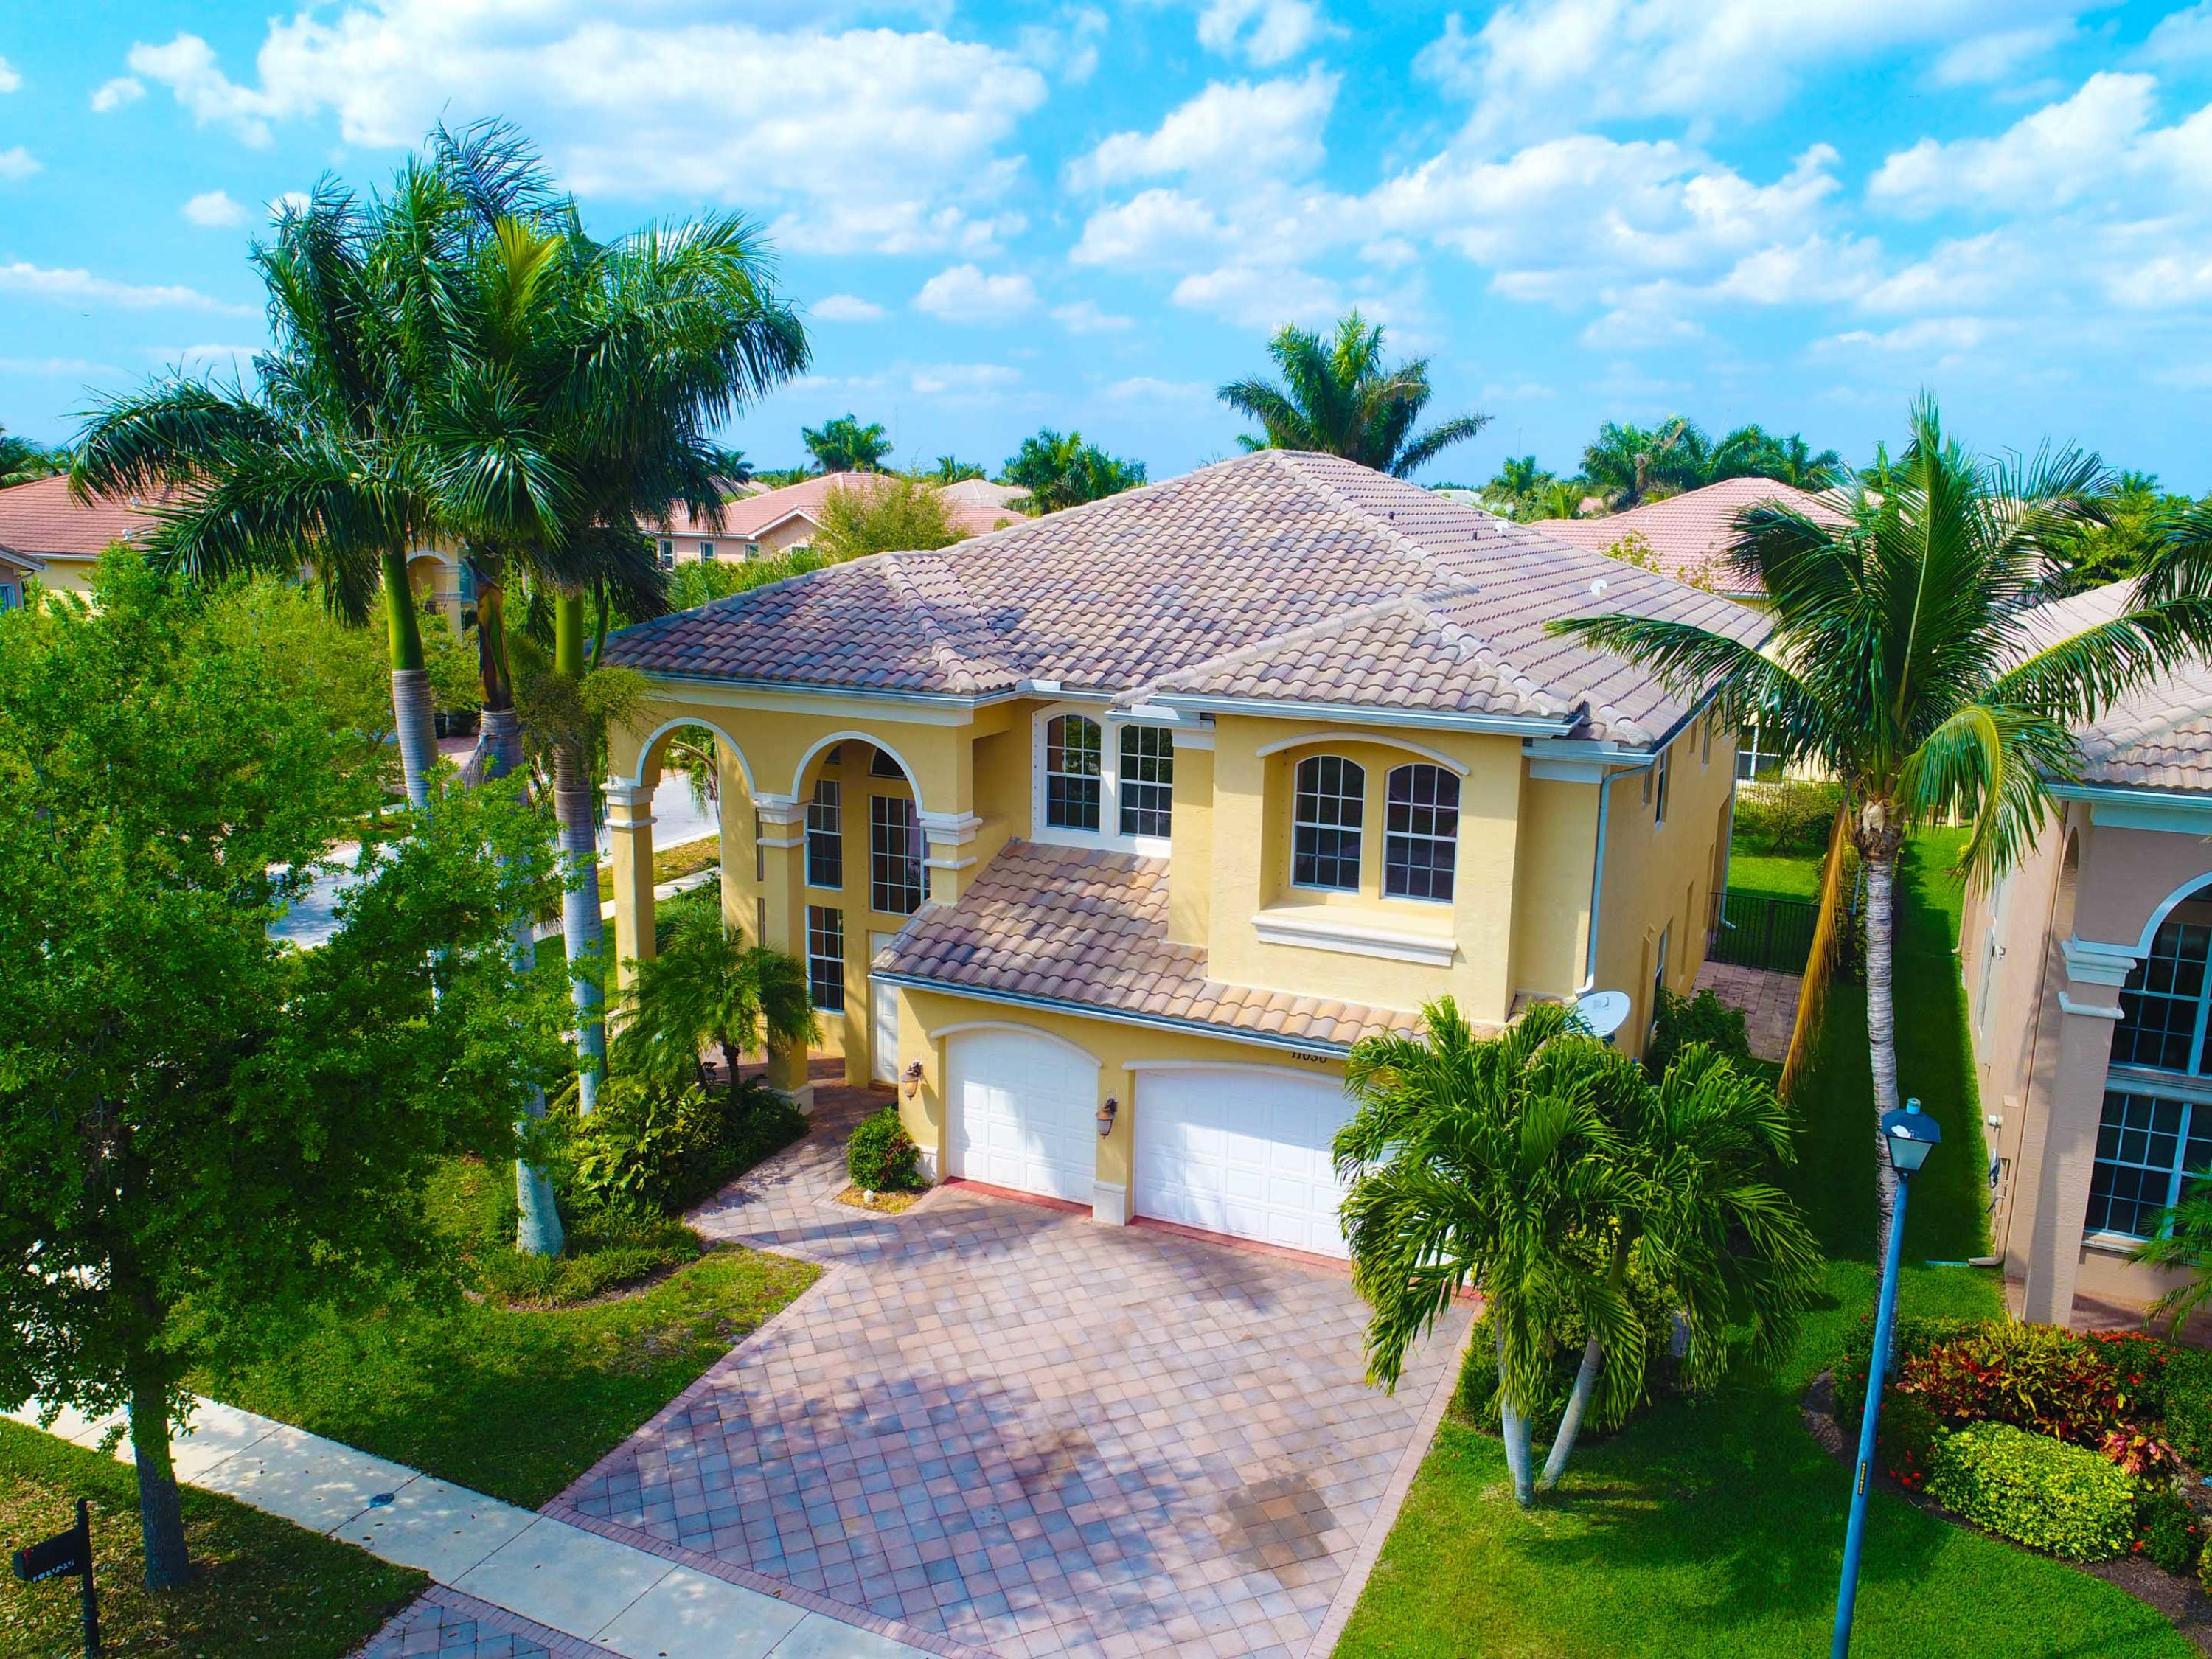 Awesome 620 Homes Boynton Beach Florida 5 Bedroom Homes For Rent Download Free Architecture Designs Viewormadebymaigaardcom